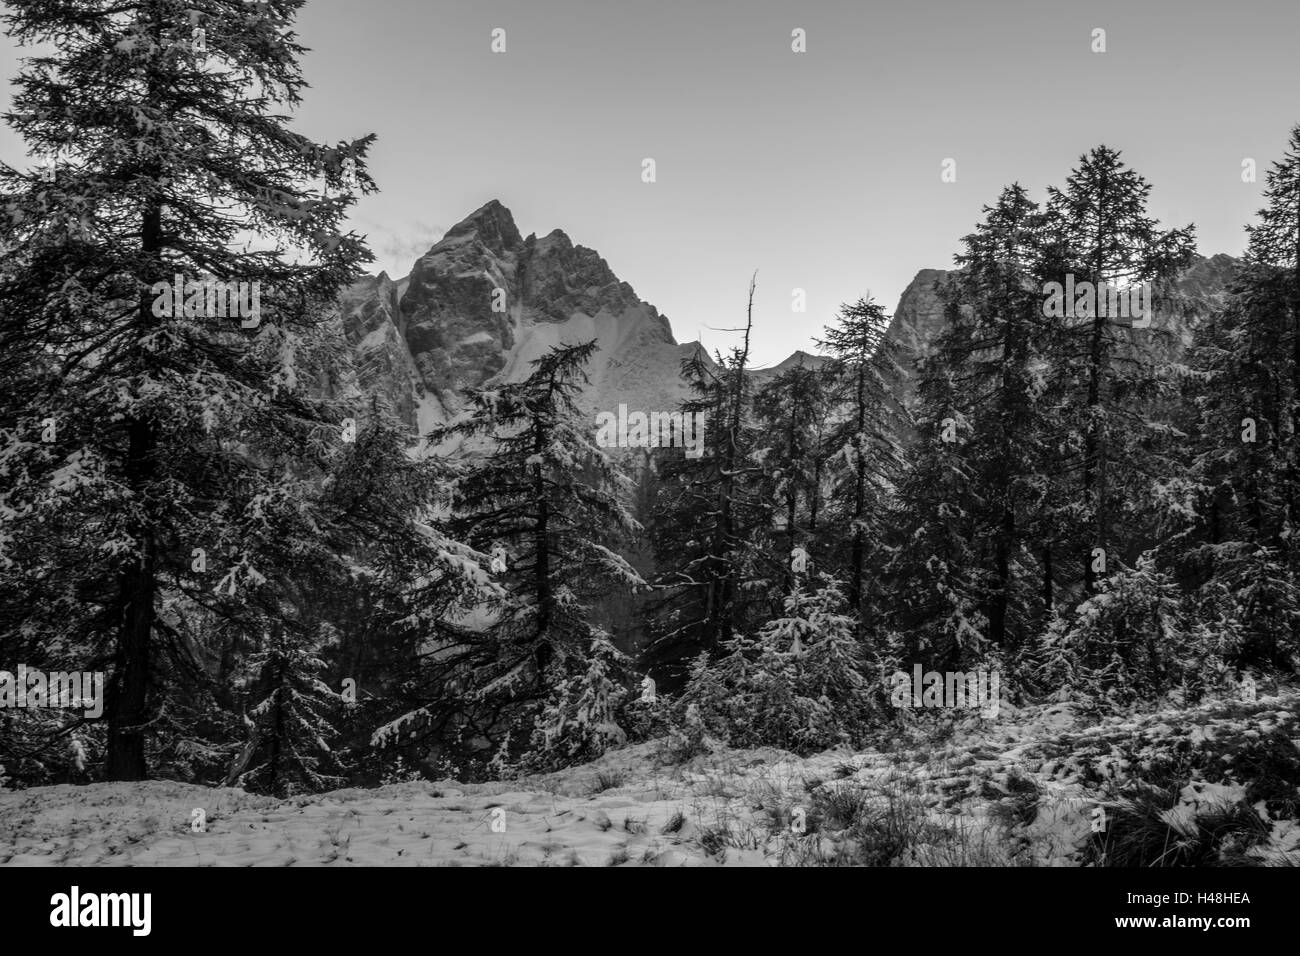 Mountain view in black and white - Stock Image